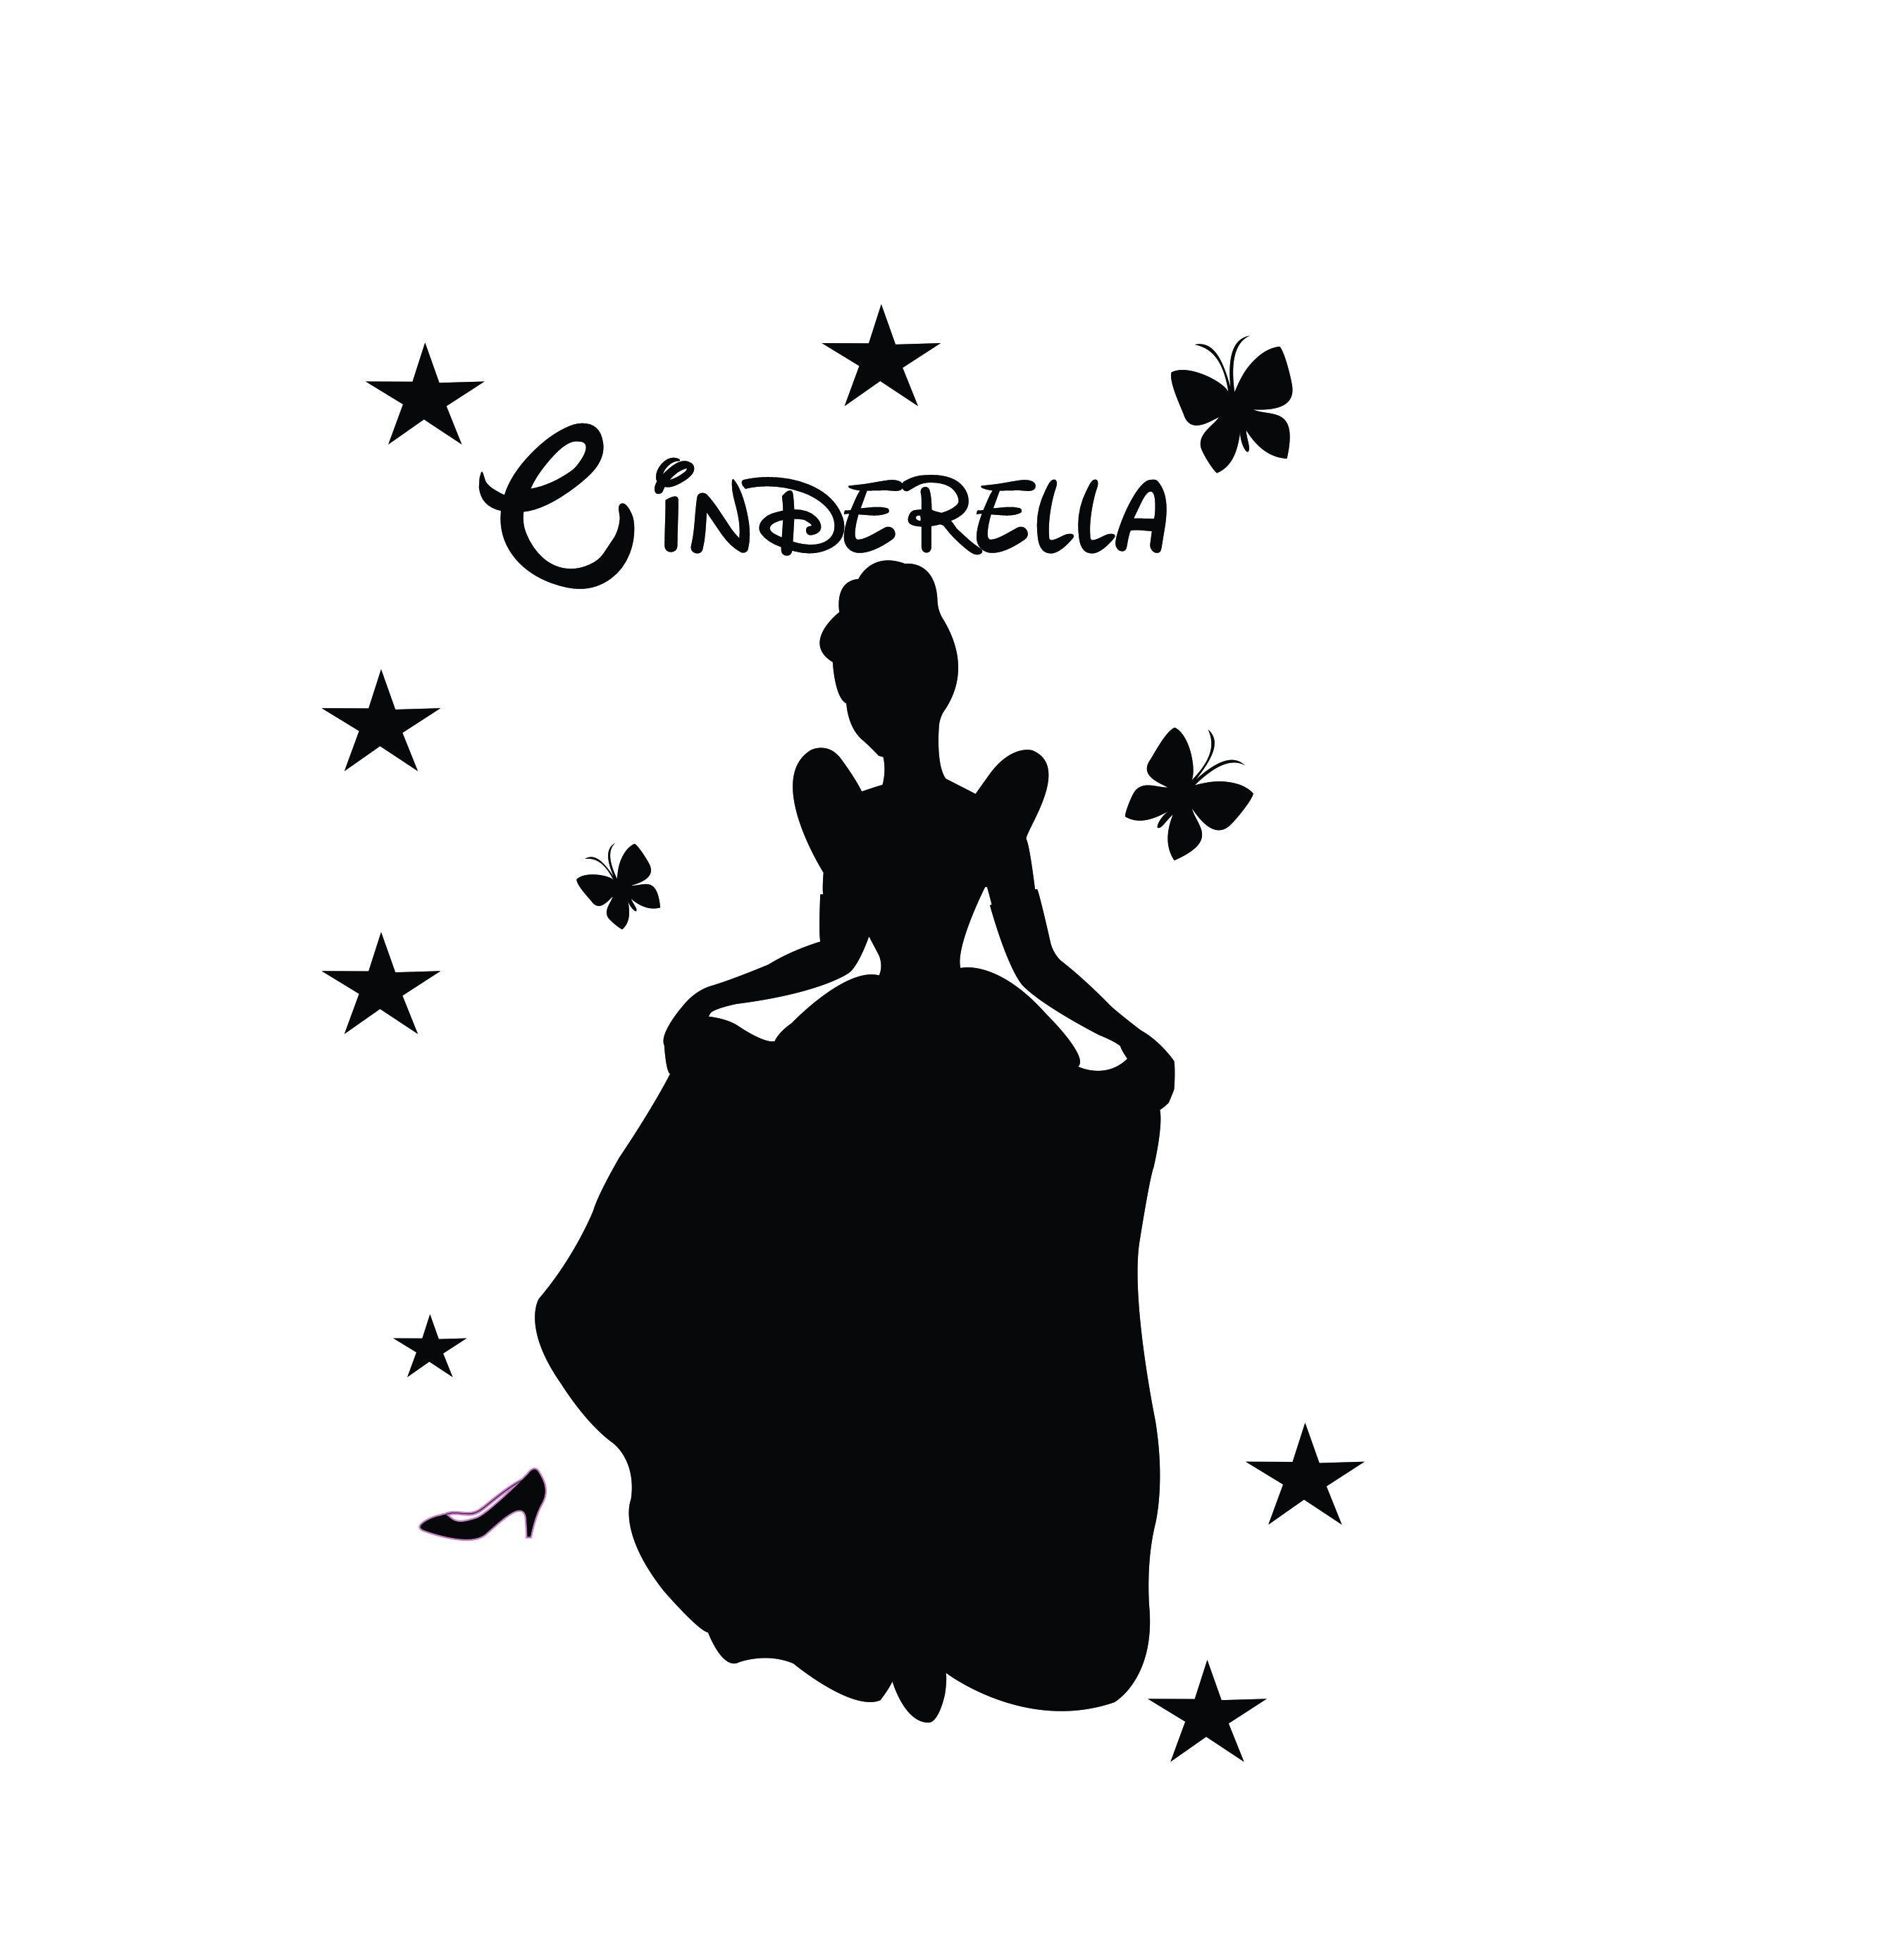 Cinderella Silhouette Vector Svg And Png Digital Download Princess Vector Graphic Silhouette Vector Cinderella Silhouette Vector Svg